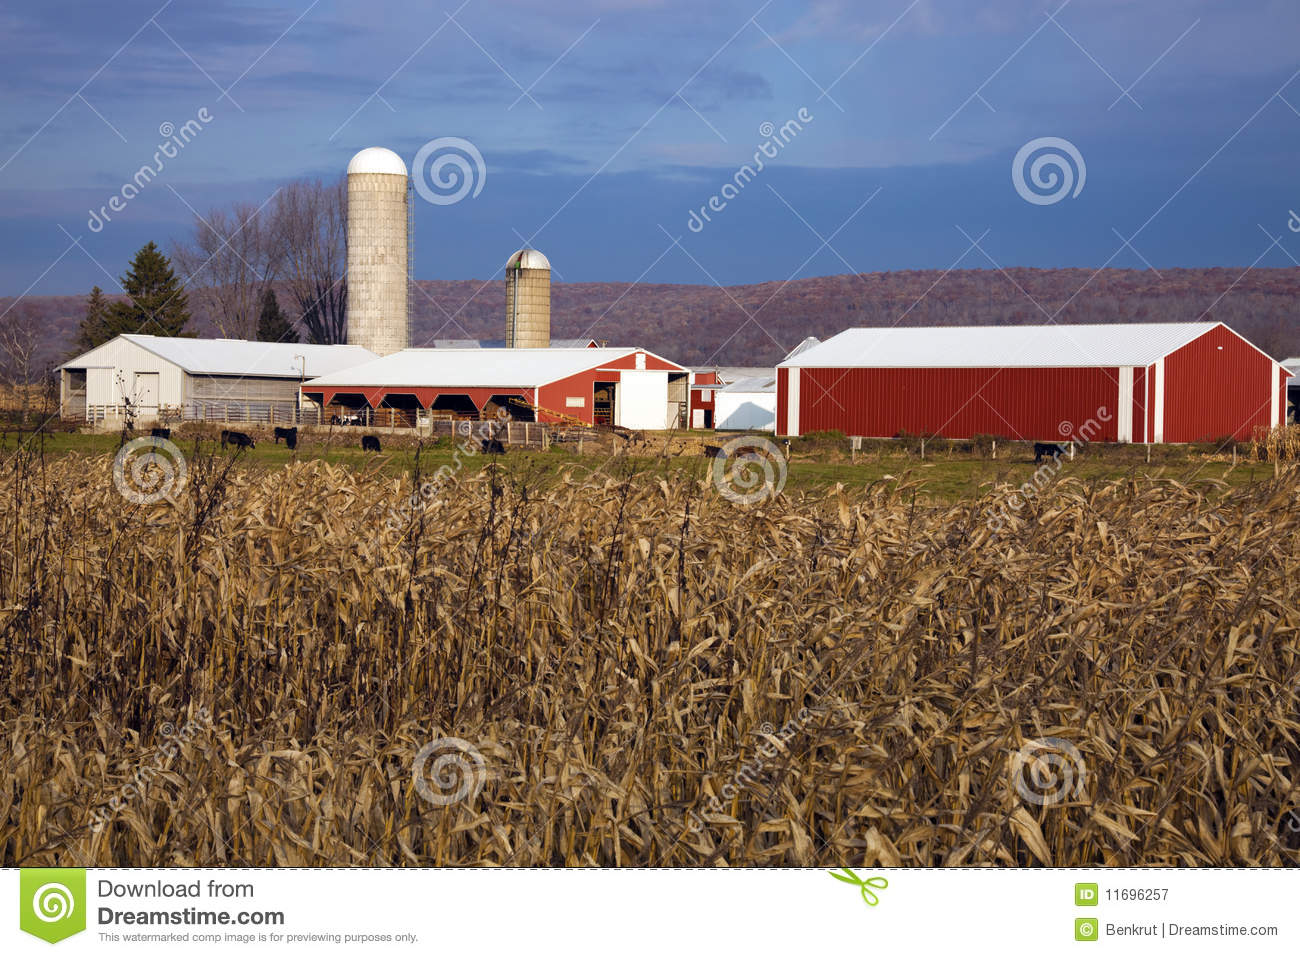 Corn and Red Farm Buildings